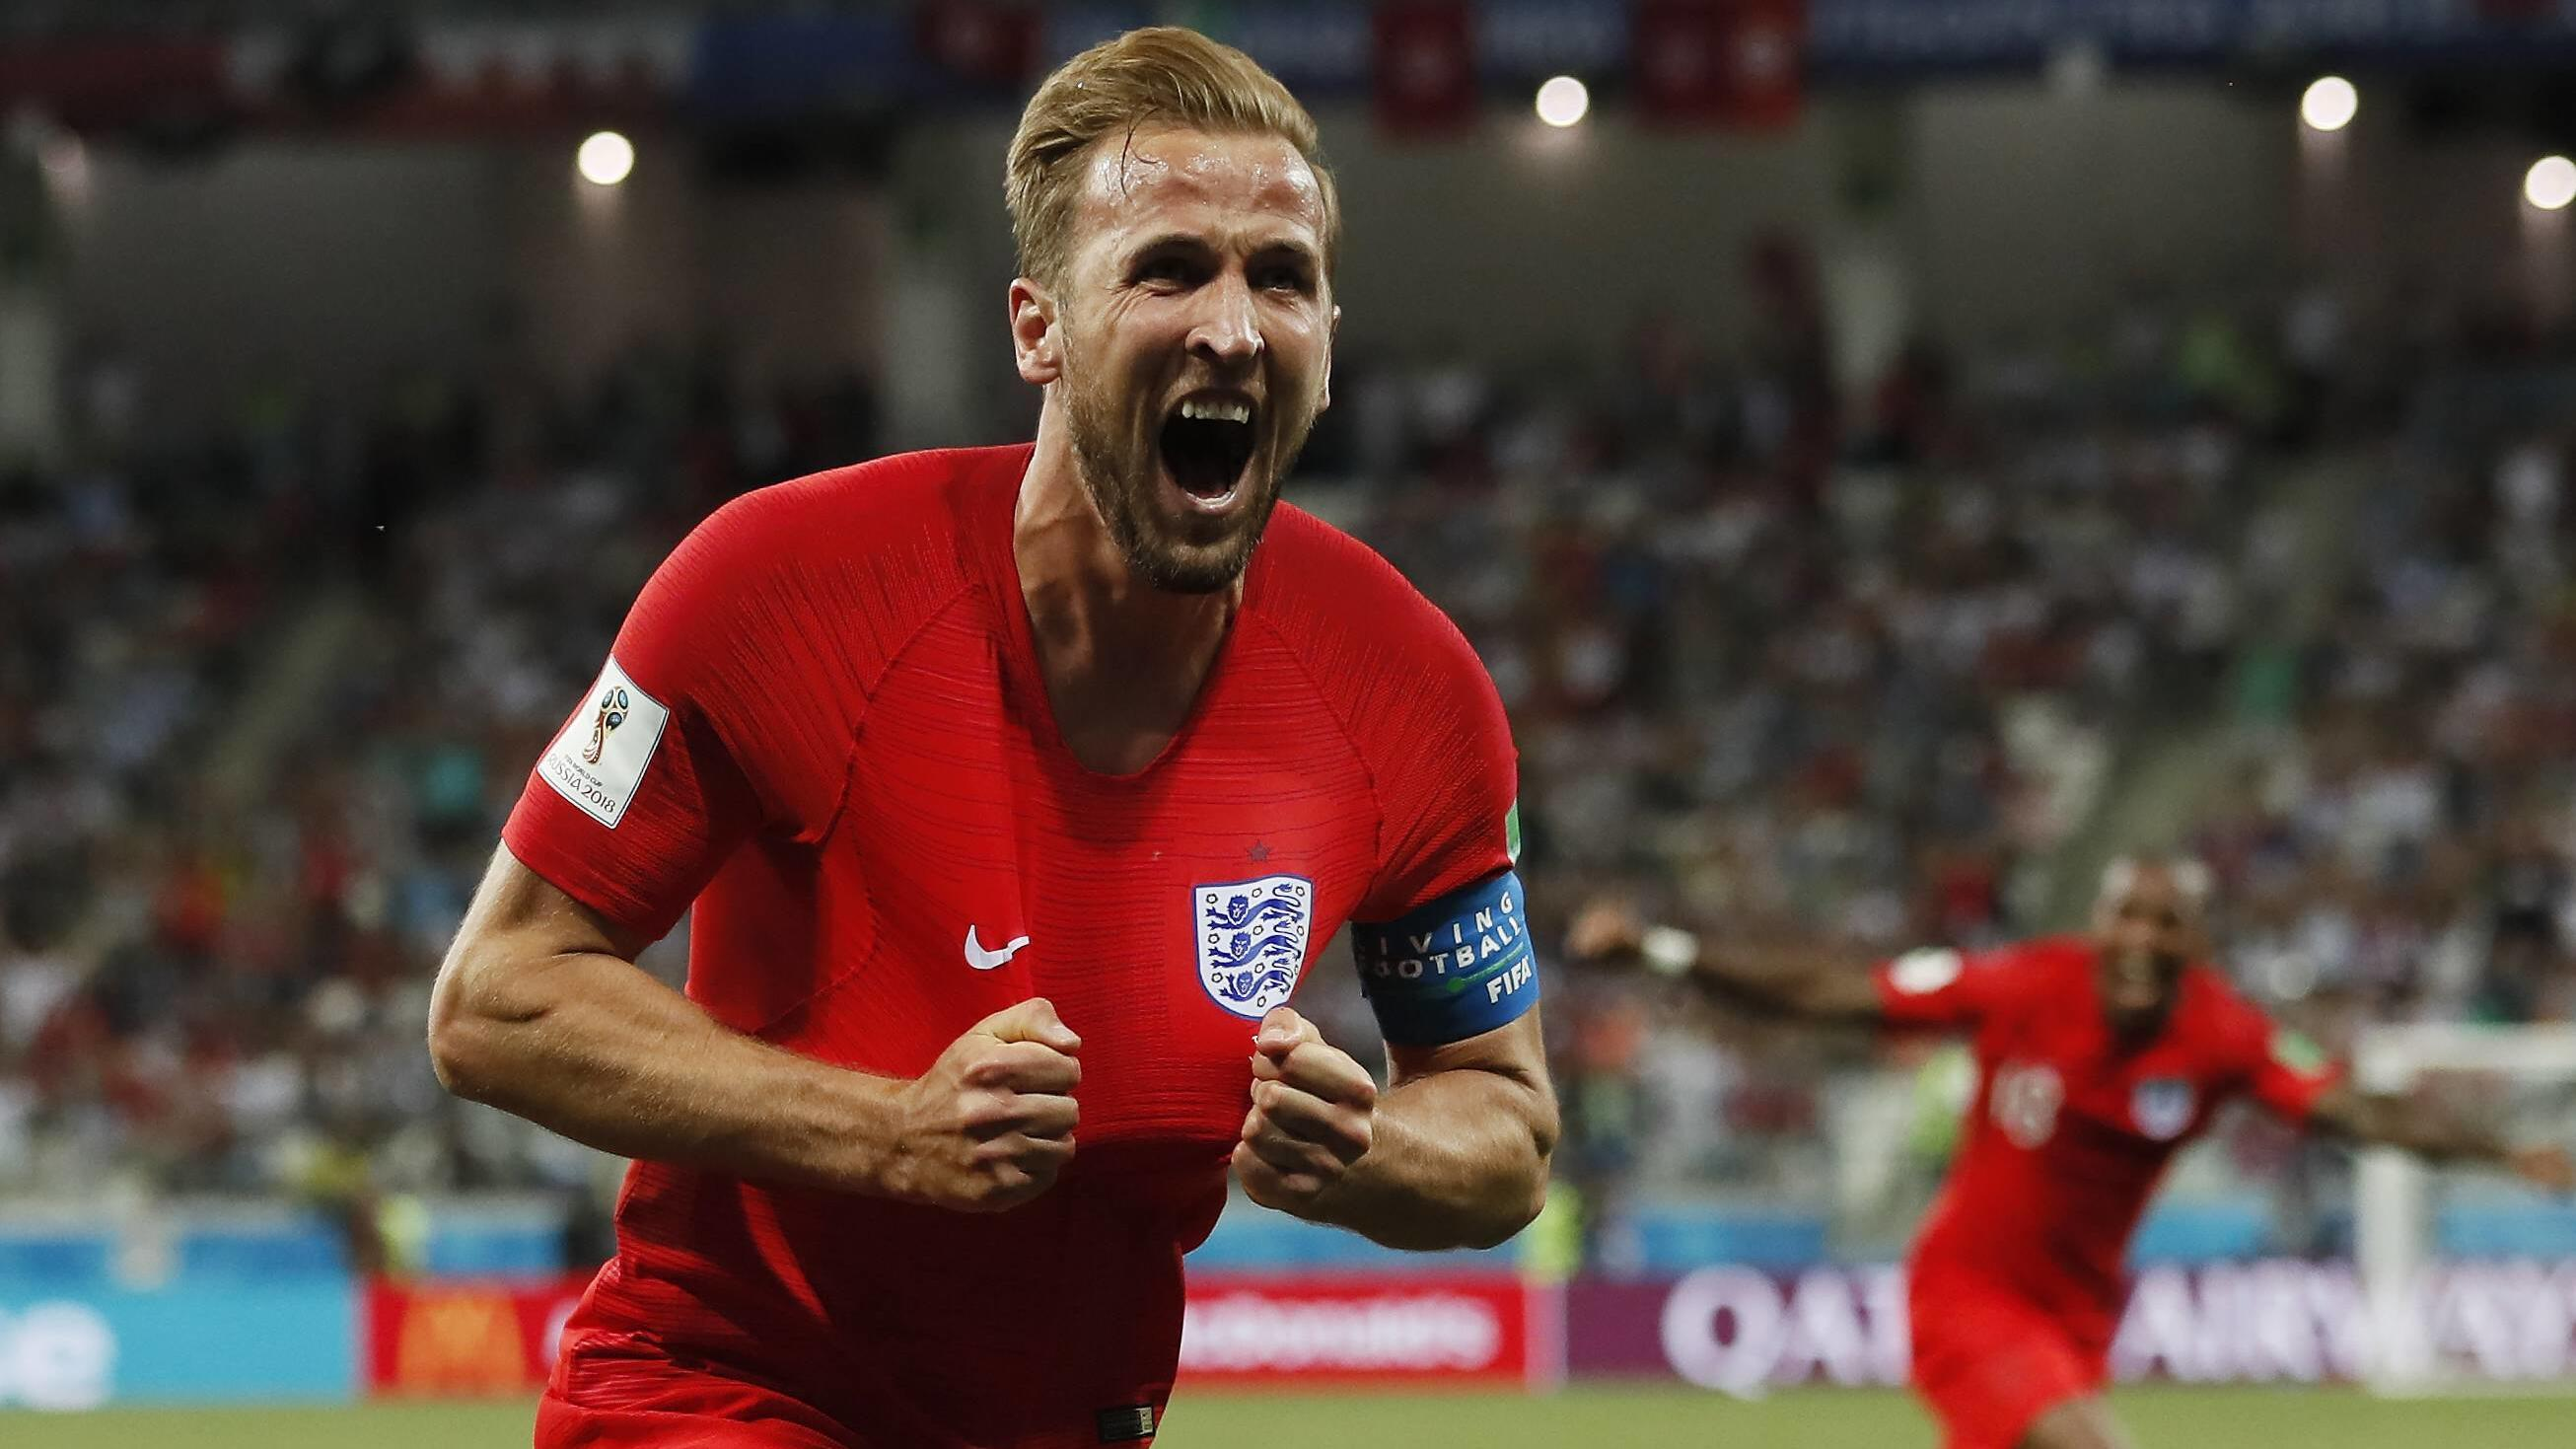 WM 2018, Tunesien - England Harry Kane of England celebrates scoring his winning goal during the FIFA World Cup WM Weltmeisterschaft Fussball 2018 Group G match at the Volgograd Arena, Volgograd. Picture date 18th June 2018. Picture credit should rea